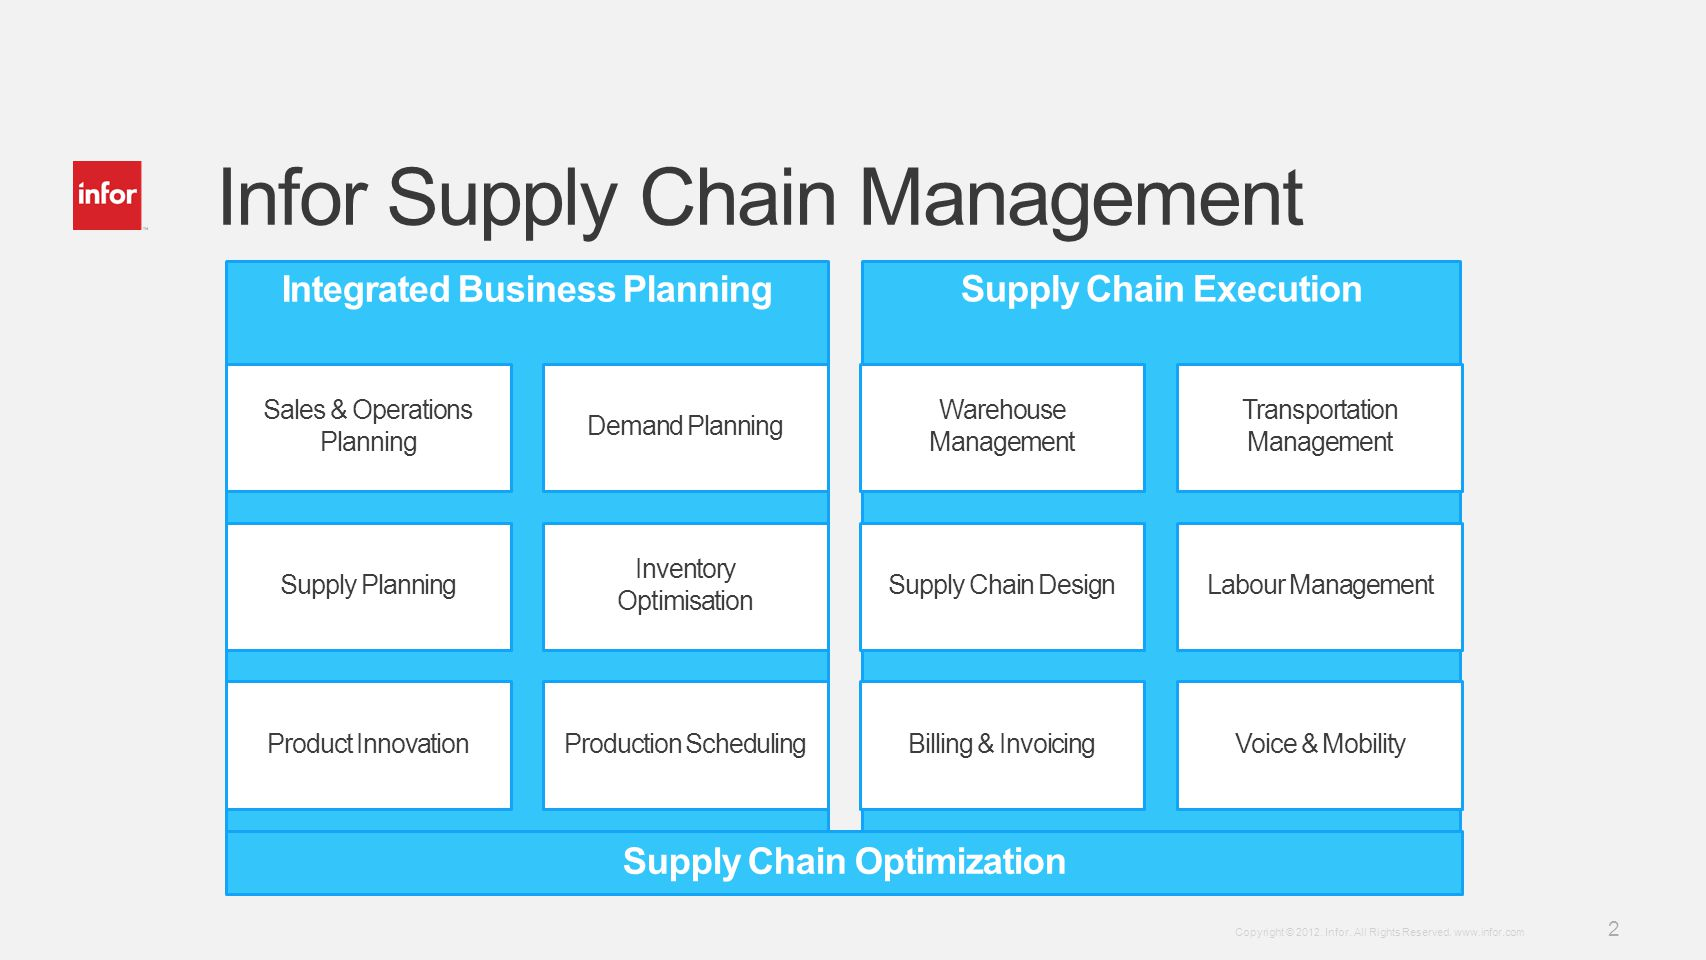 Template v4 September 27, 2012 2 Copyright © 2012. Infor. All Rights Reserved. www.infor.com Infor Supply Chain Management Supply Chain Execution Inte